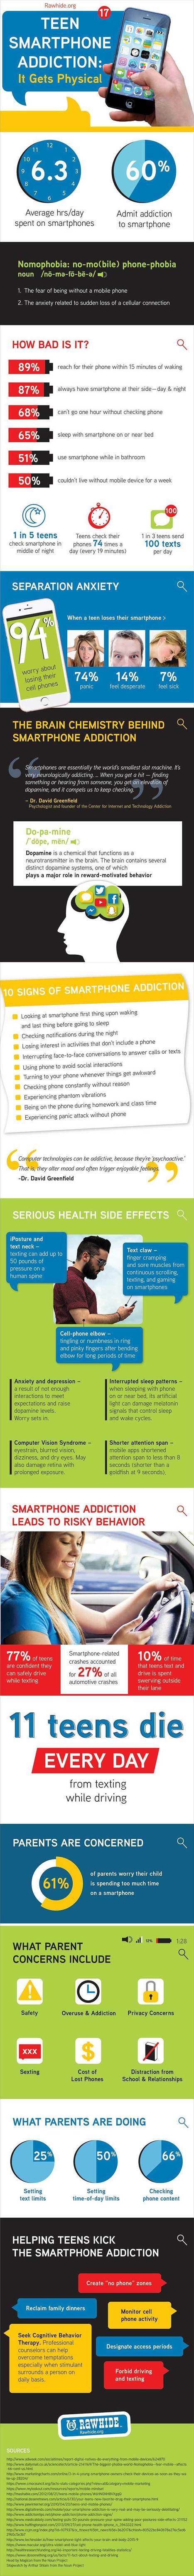 Teen Smartphone Addiction: It Gets Physical [Infographic] | Affordable Learning | Scoop.it